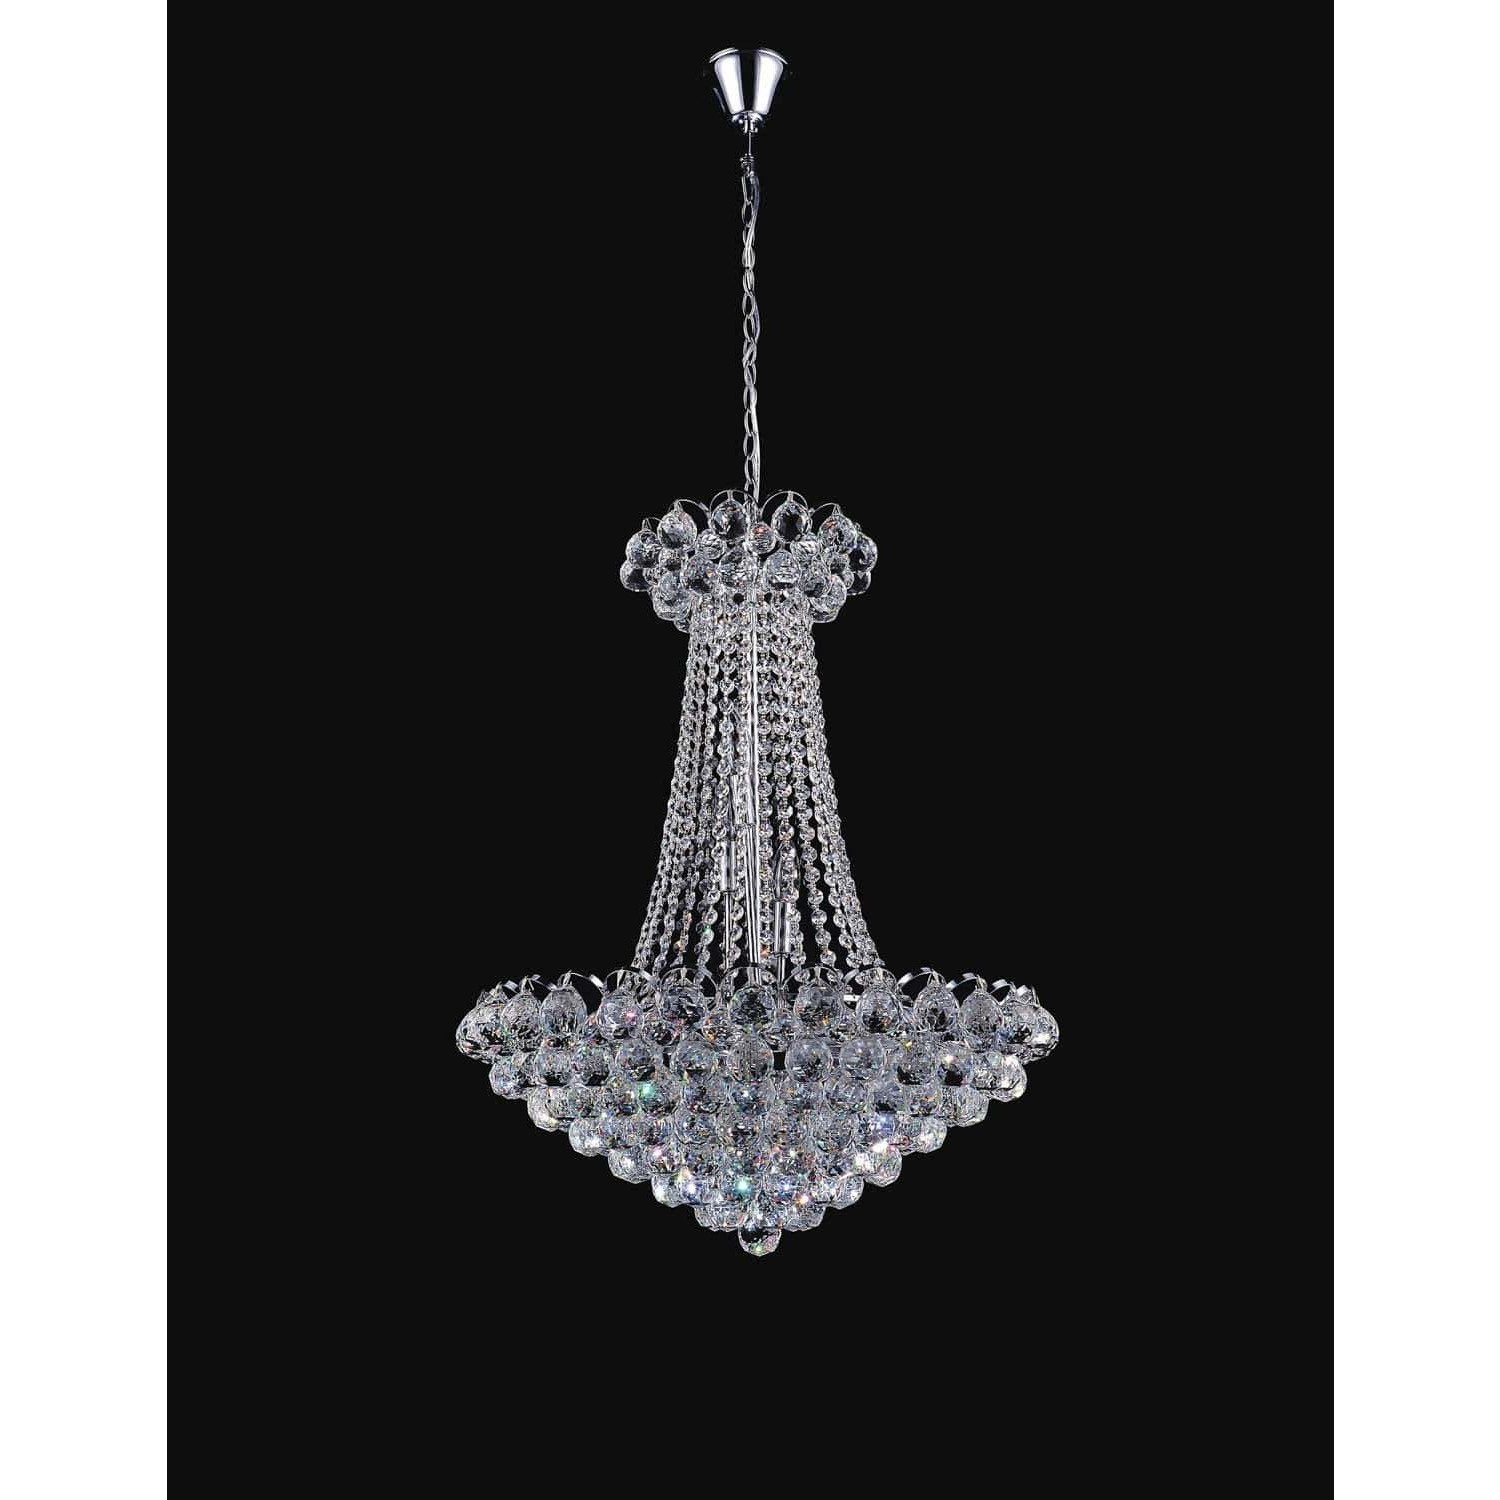 CWI Lighting Chandeliers Chrome Glimmer 11 Light Down Chandelier with Chrome finish by CWI Lighting 8008P24C